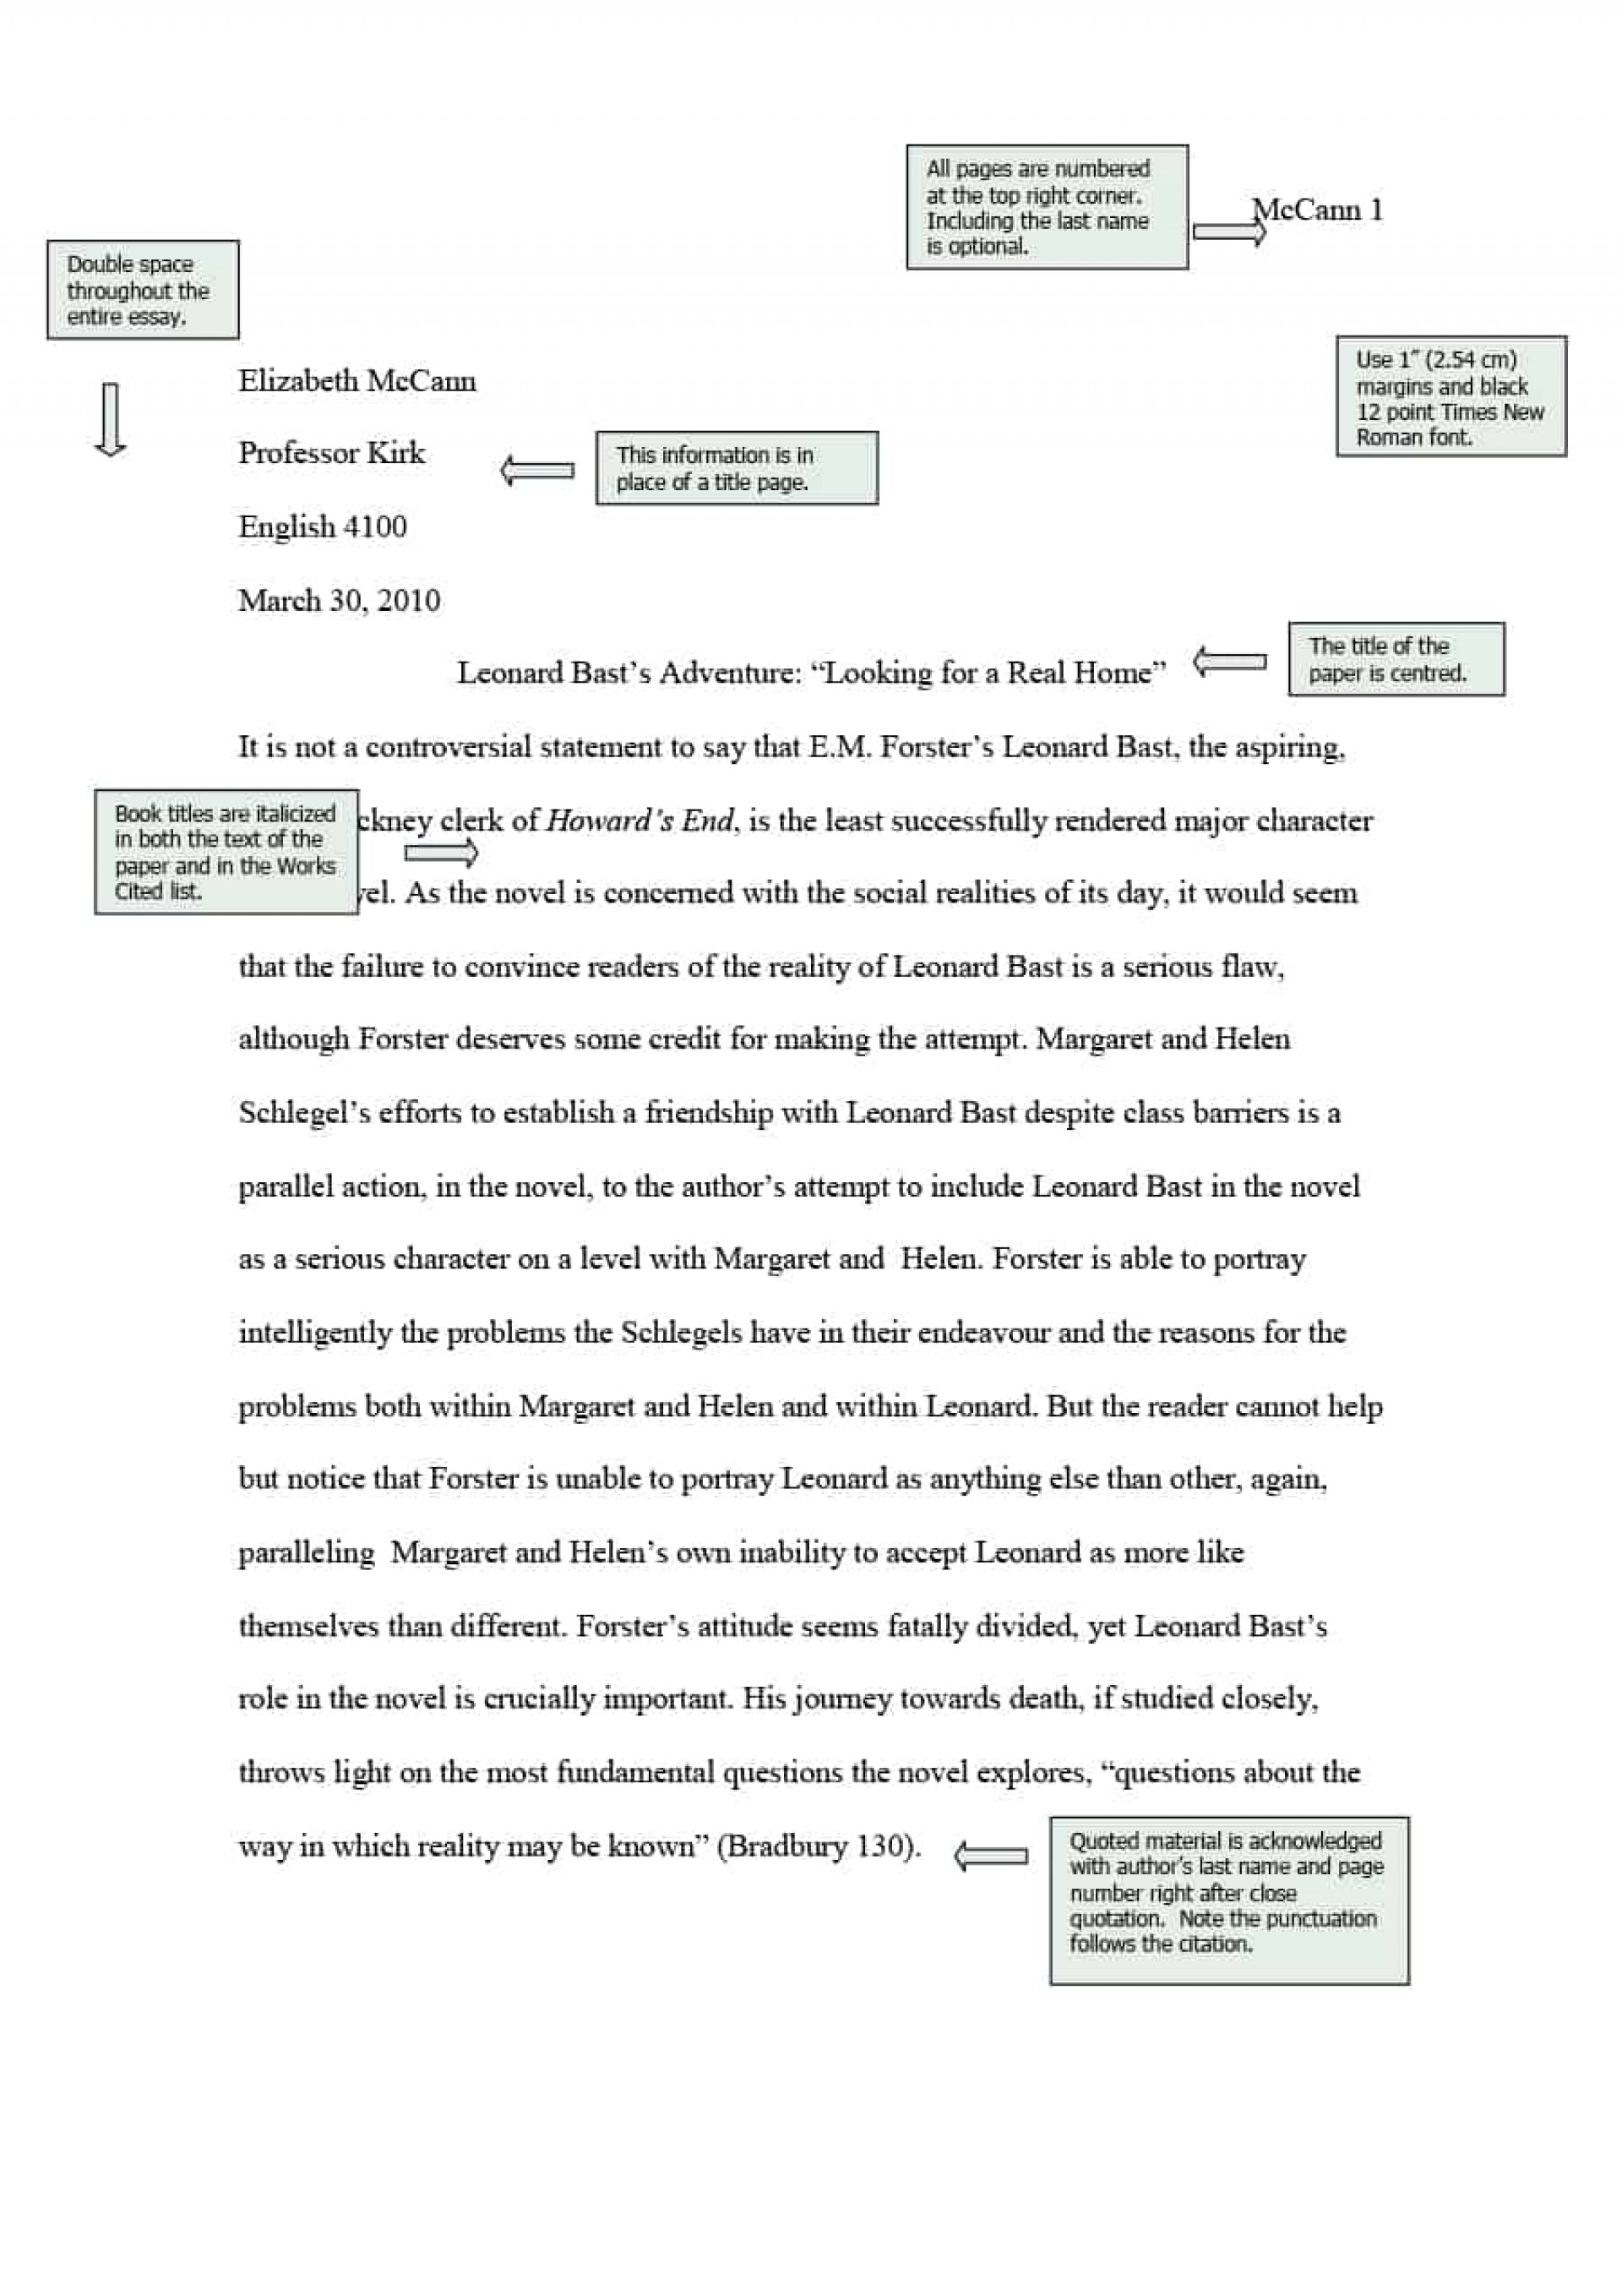 007 How To Cite In An Essay Mla Example Format Template Archaicawful Sources Websites Movies A Paper 1920